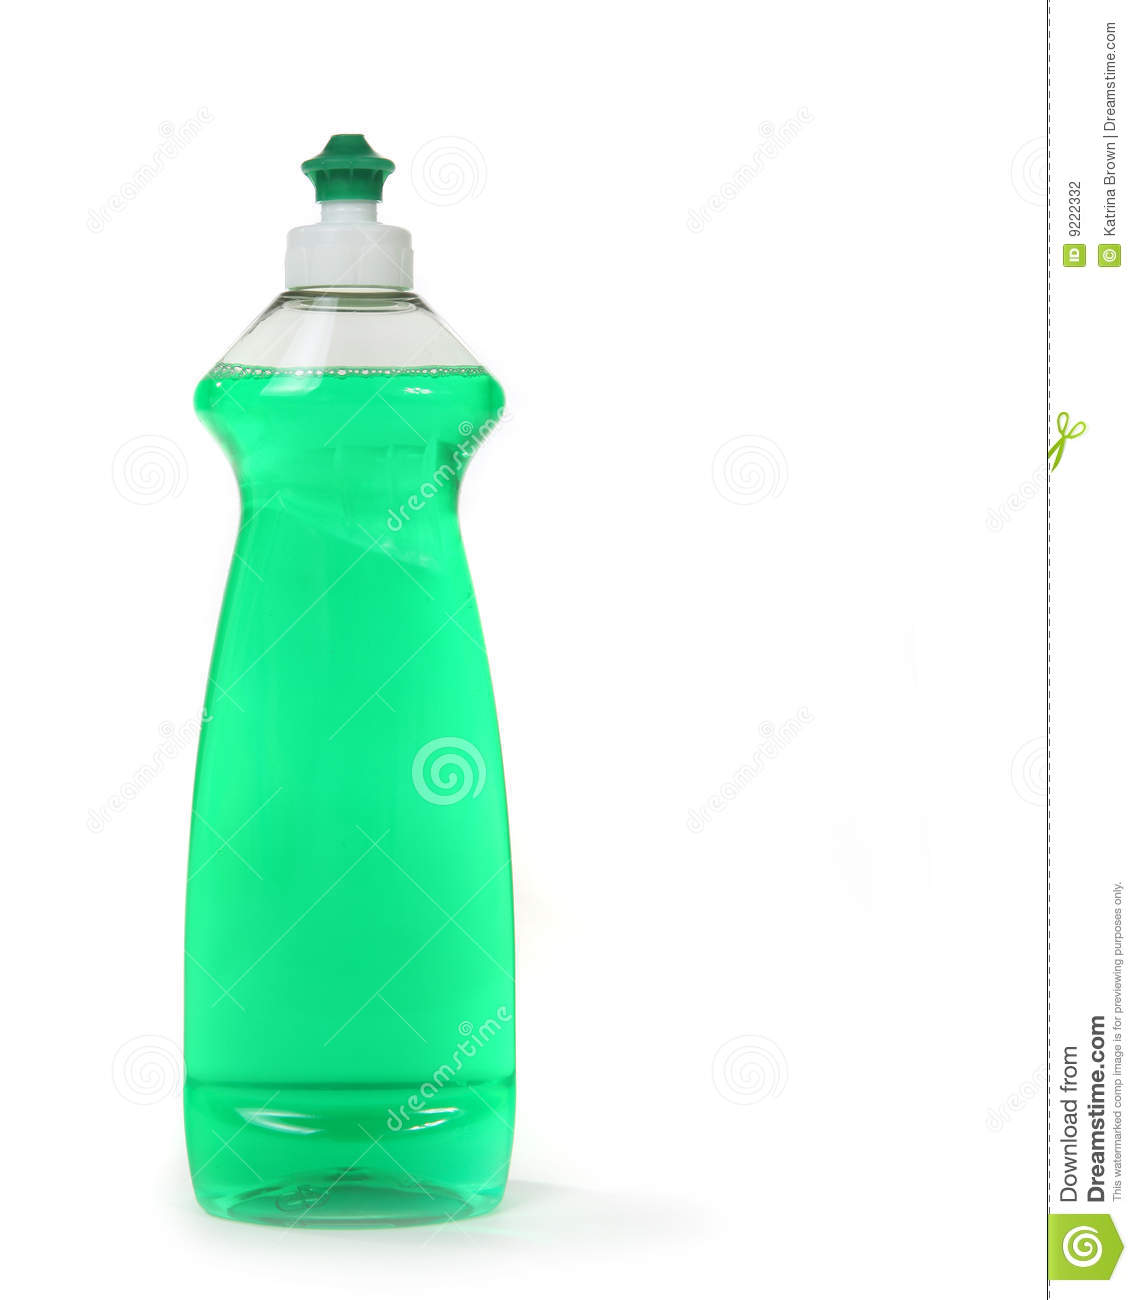 Green Dishwashing Liquid Soap In A Bottle Isolated Stock